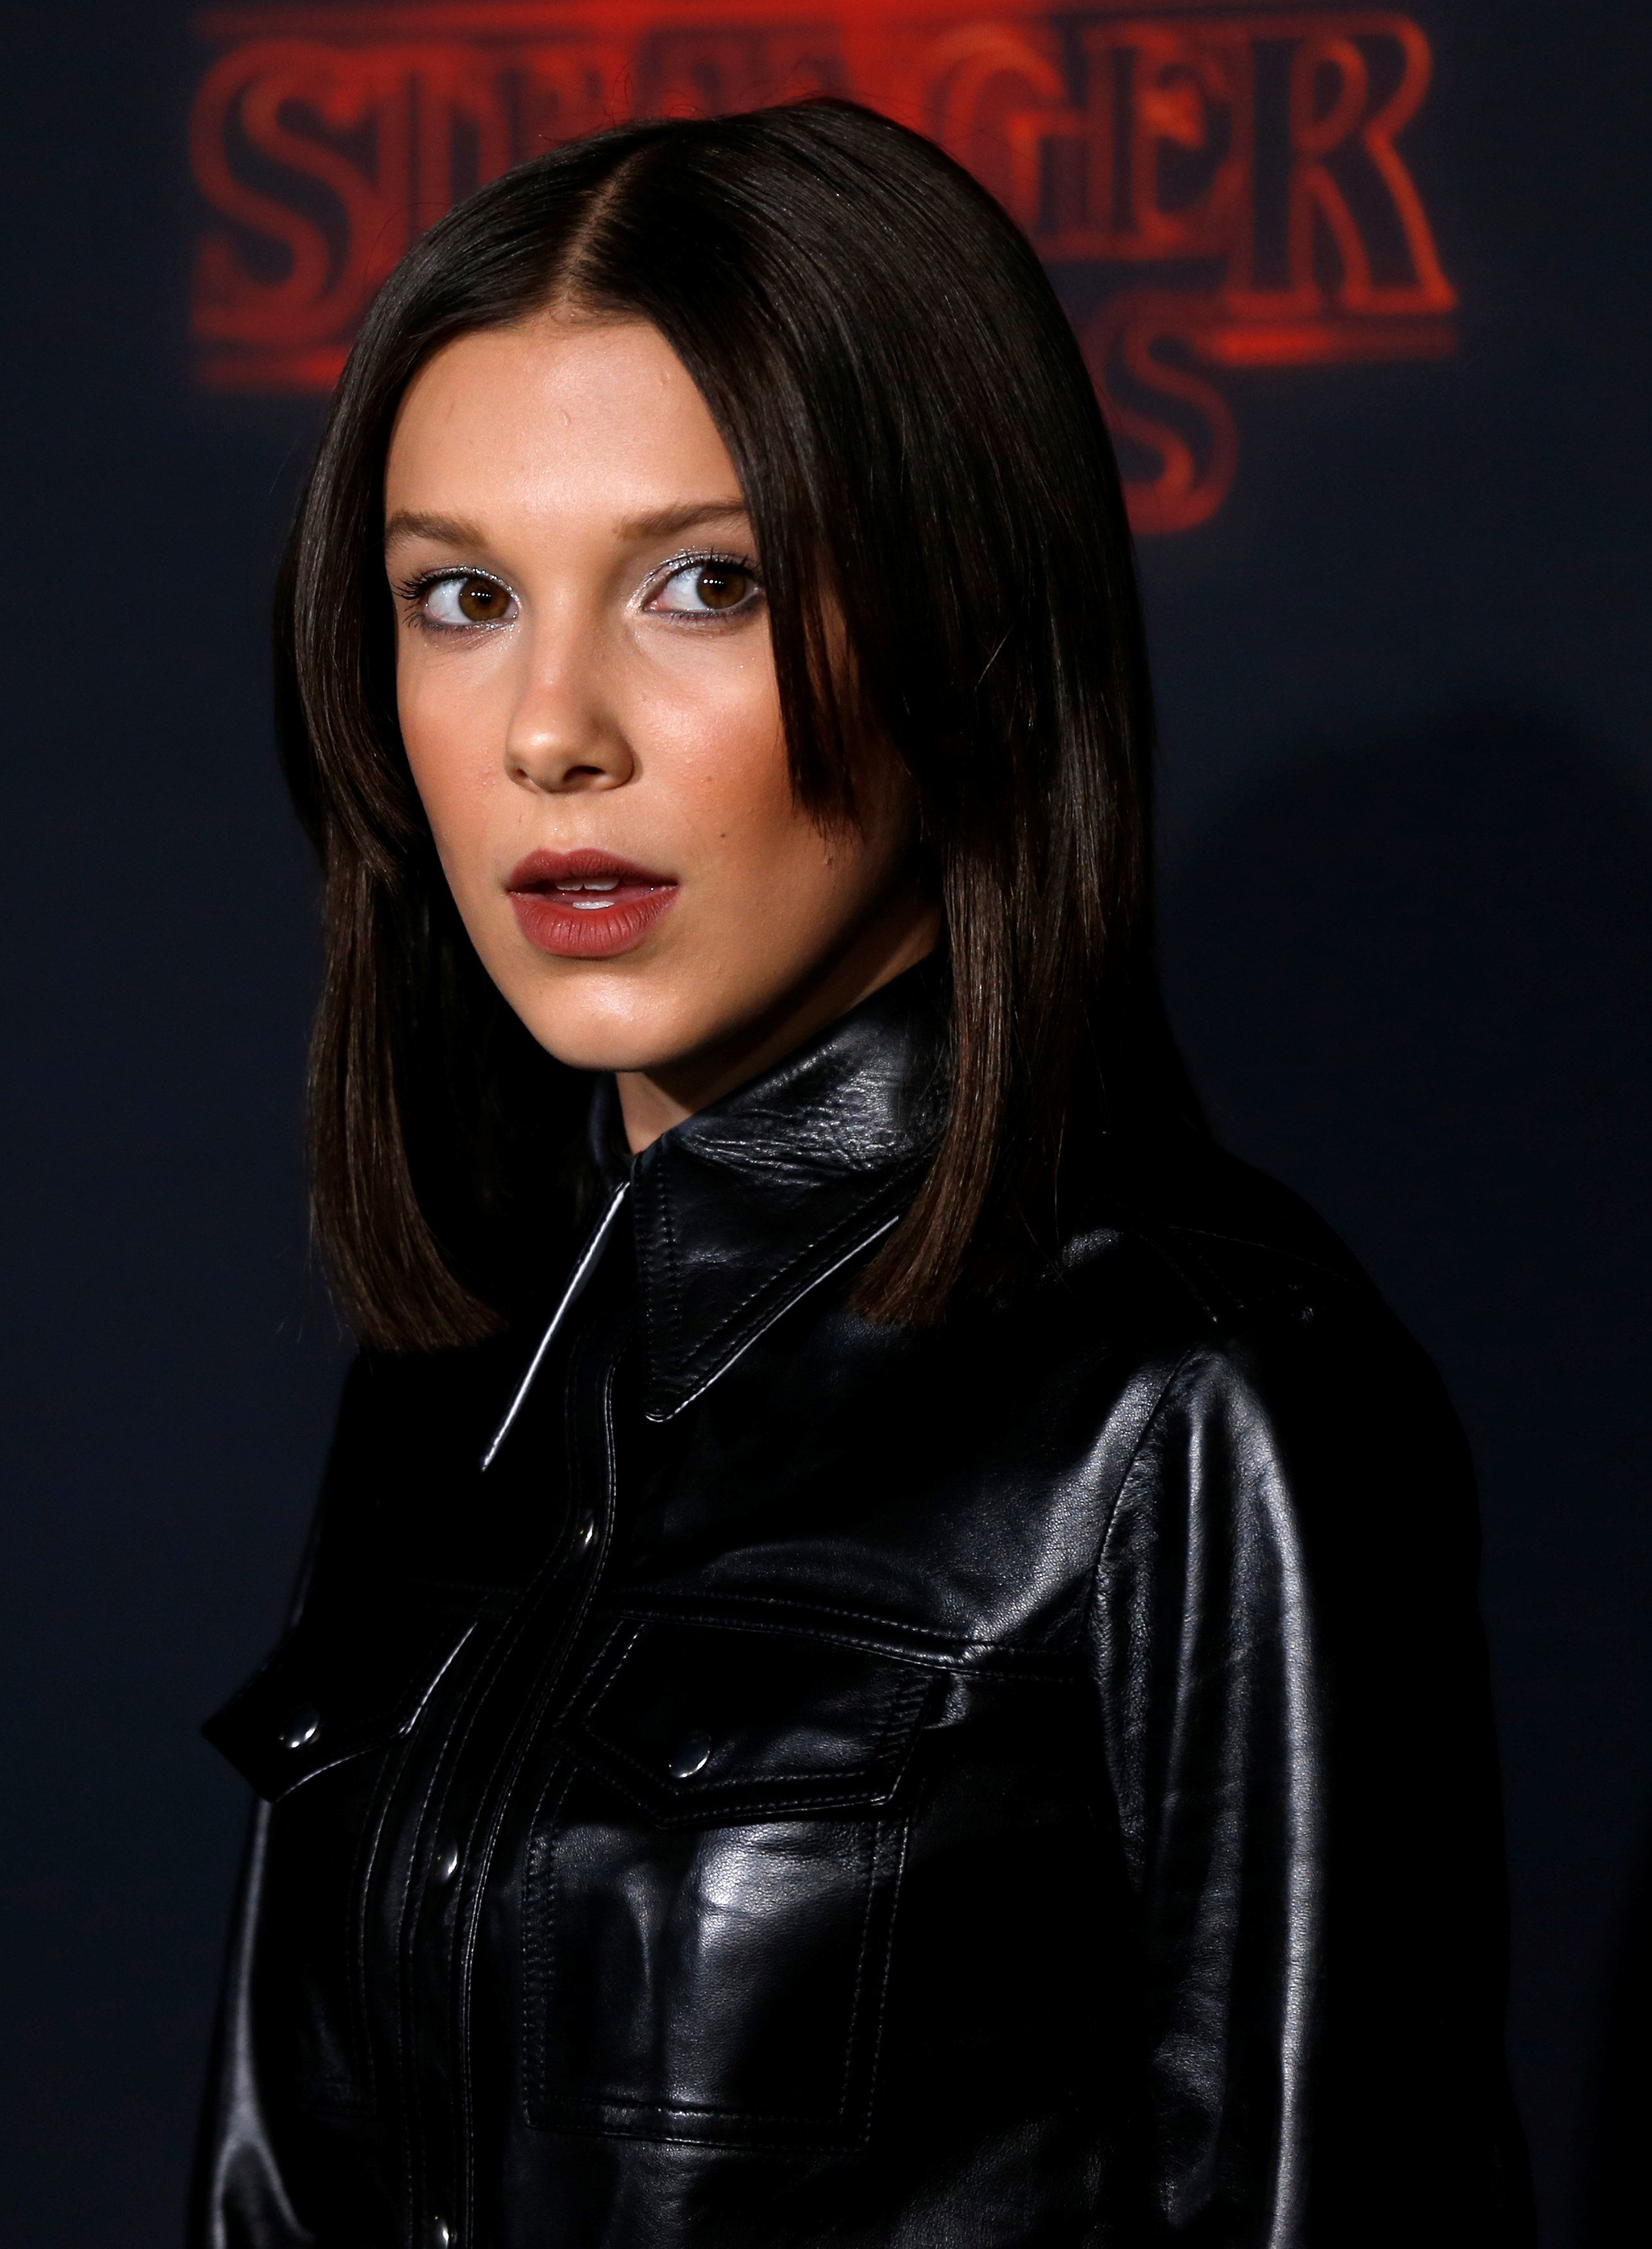 Millie Bobby Brown Has A Hollywood Doppelgänger And People Can't